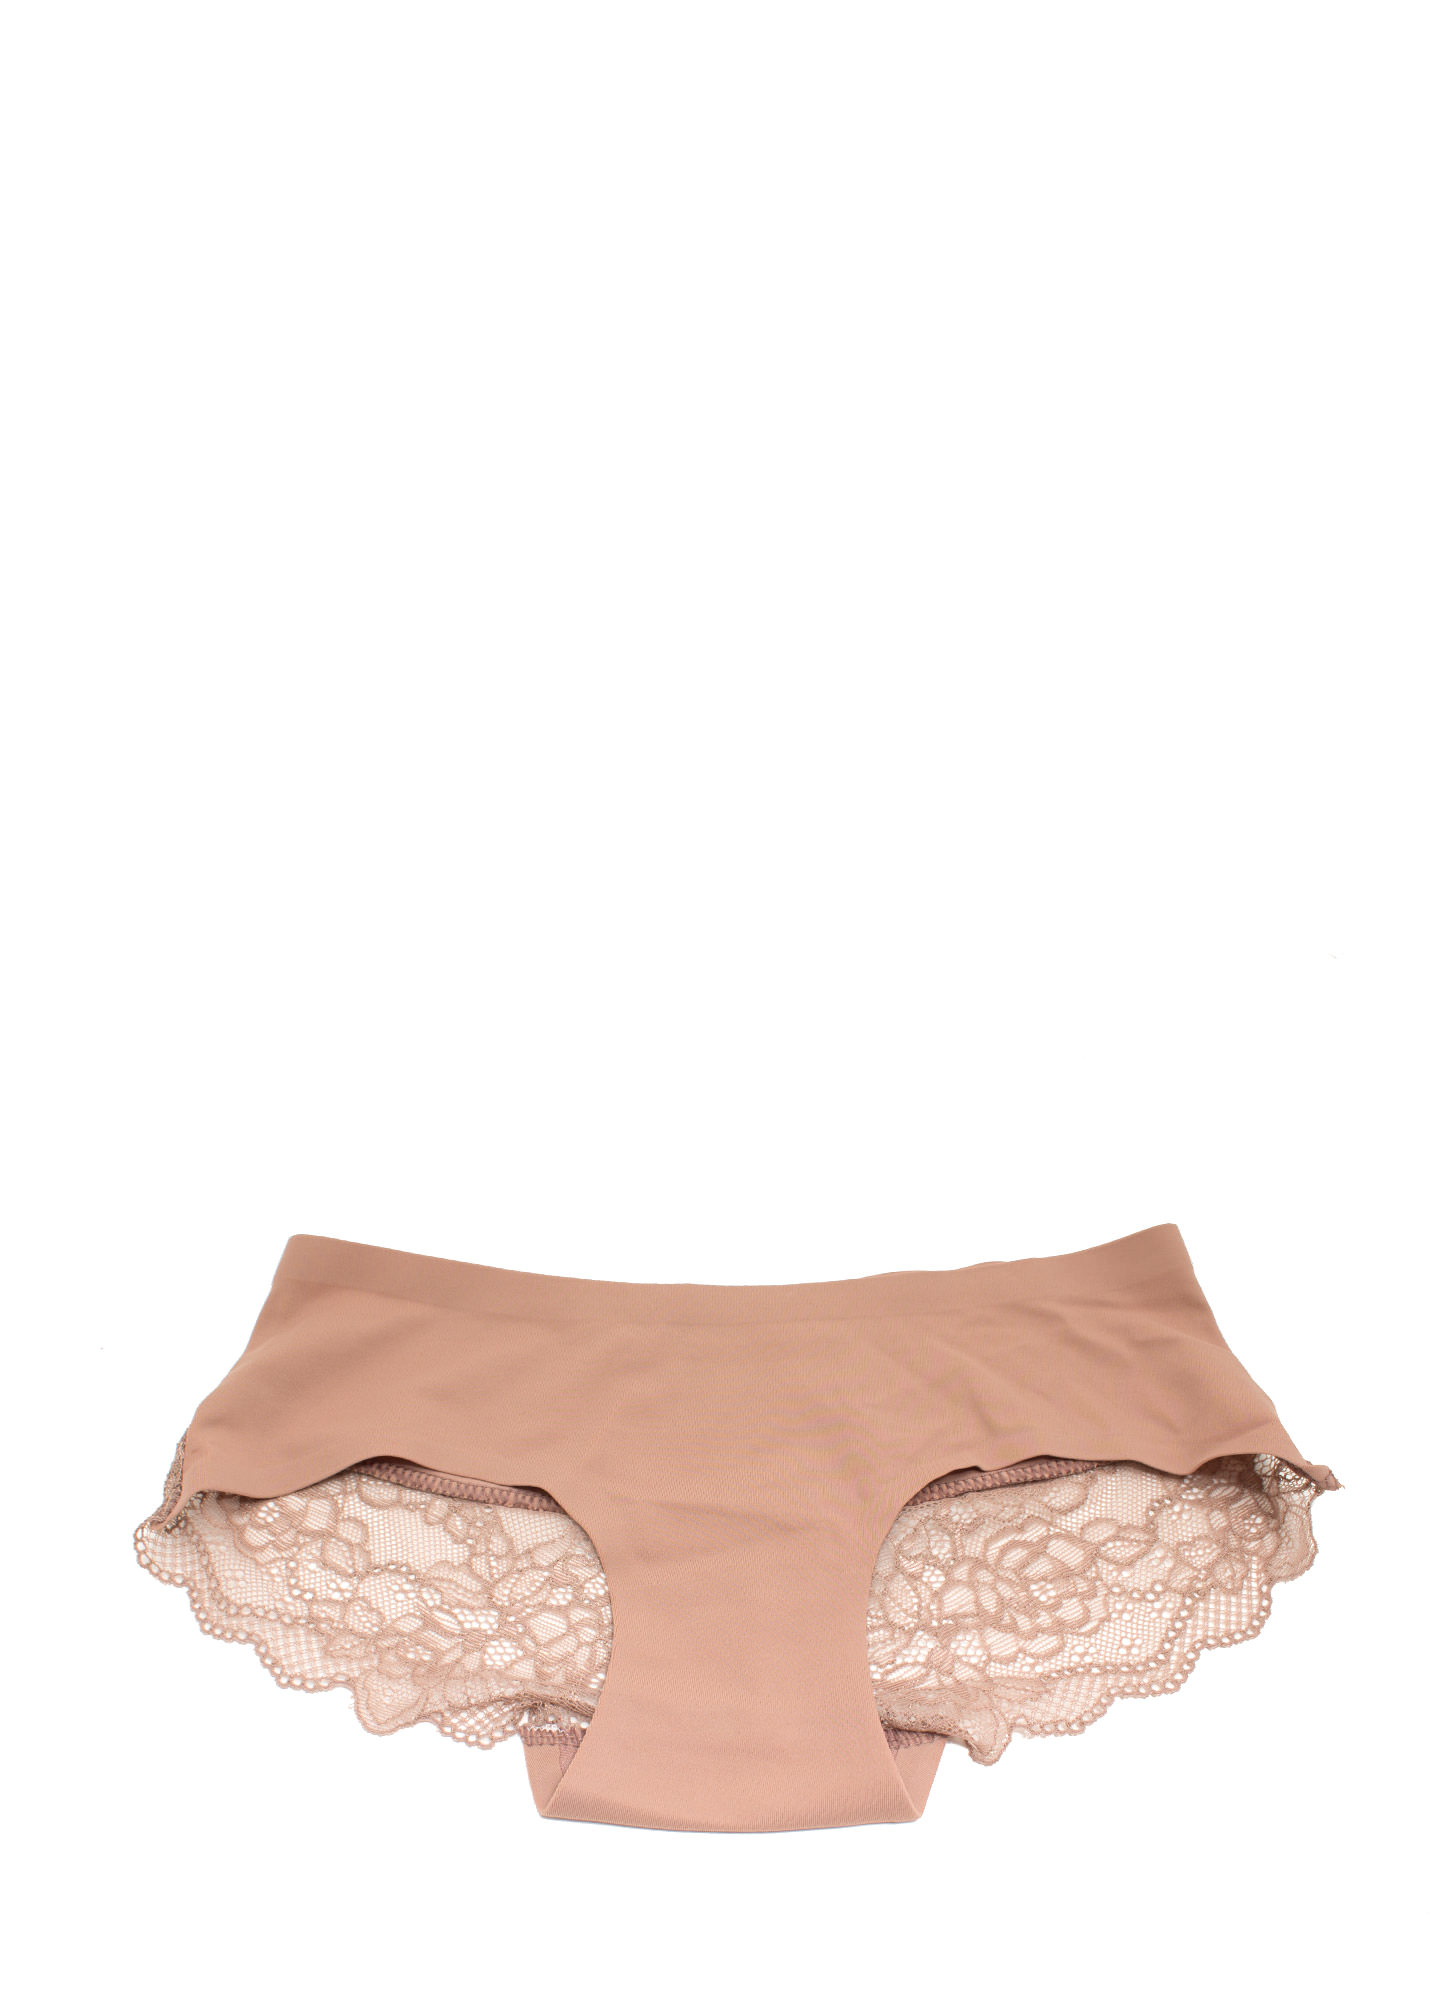 Lace Yourself Seamless Briefs CAMEL